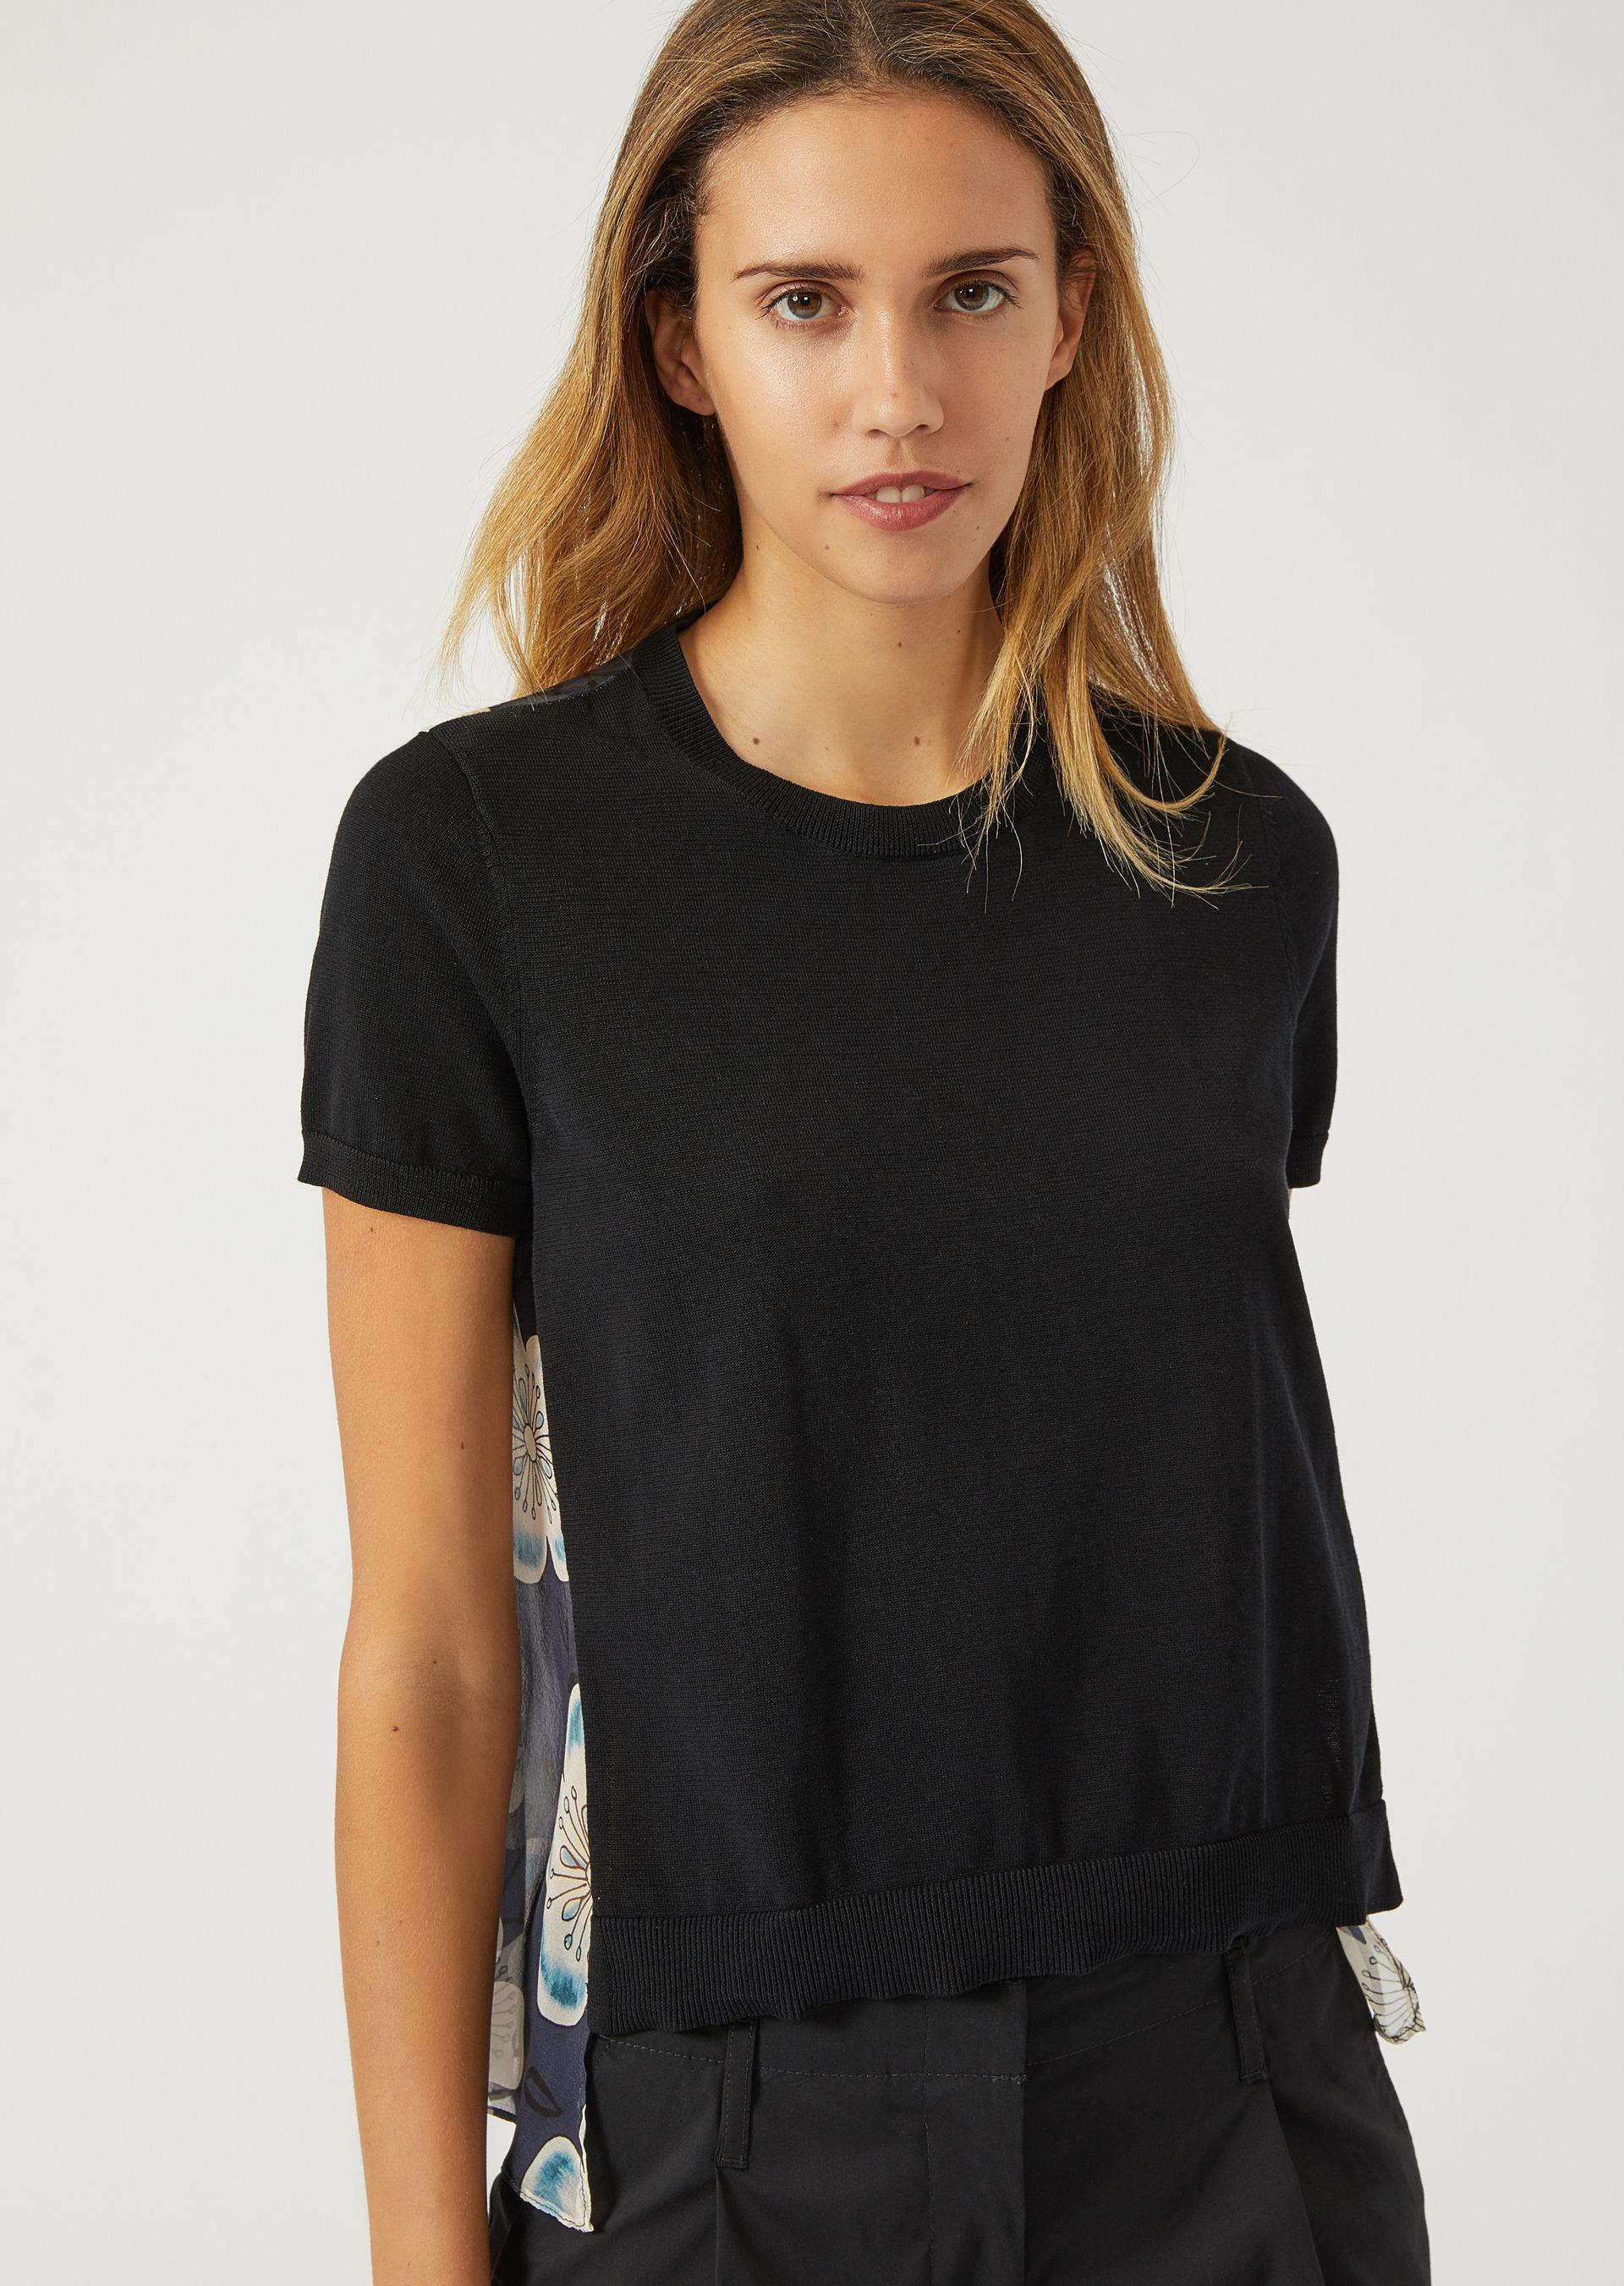 Emporio Armani Knitted Tops - Item 39834534 In Black